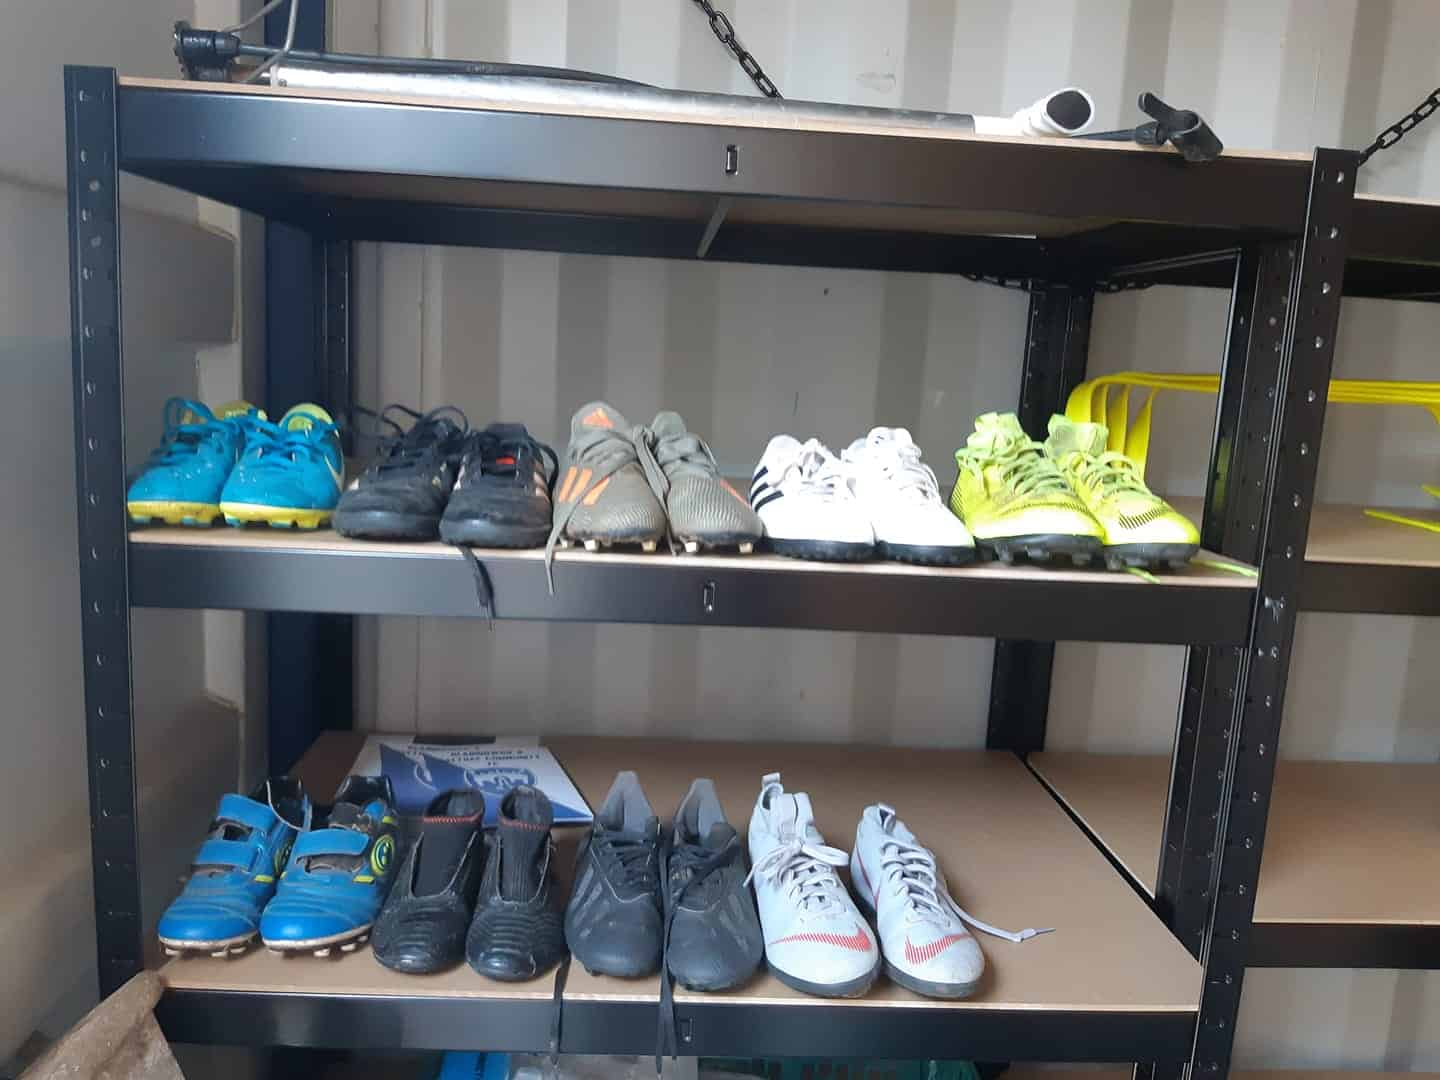 Blairgowrie and Rattray Football Club Swap Shop Helps Kids Find Boots their Size